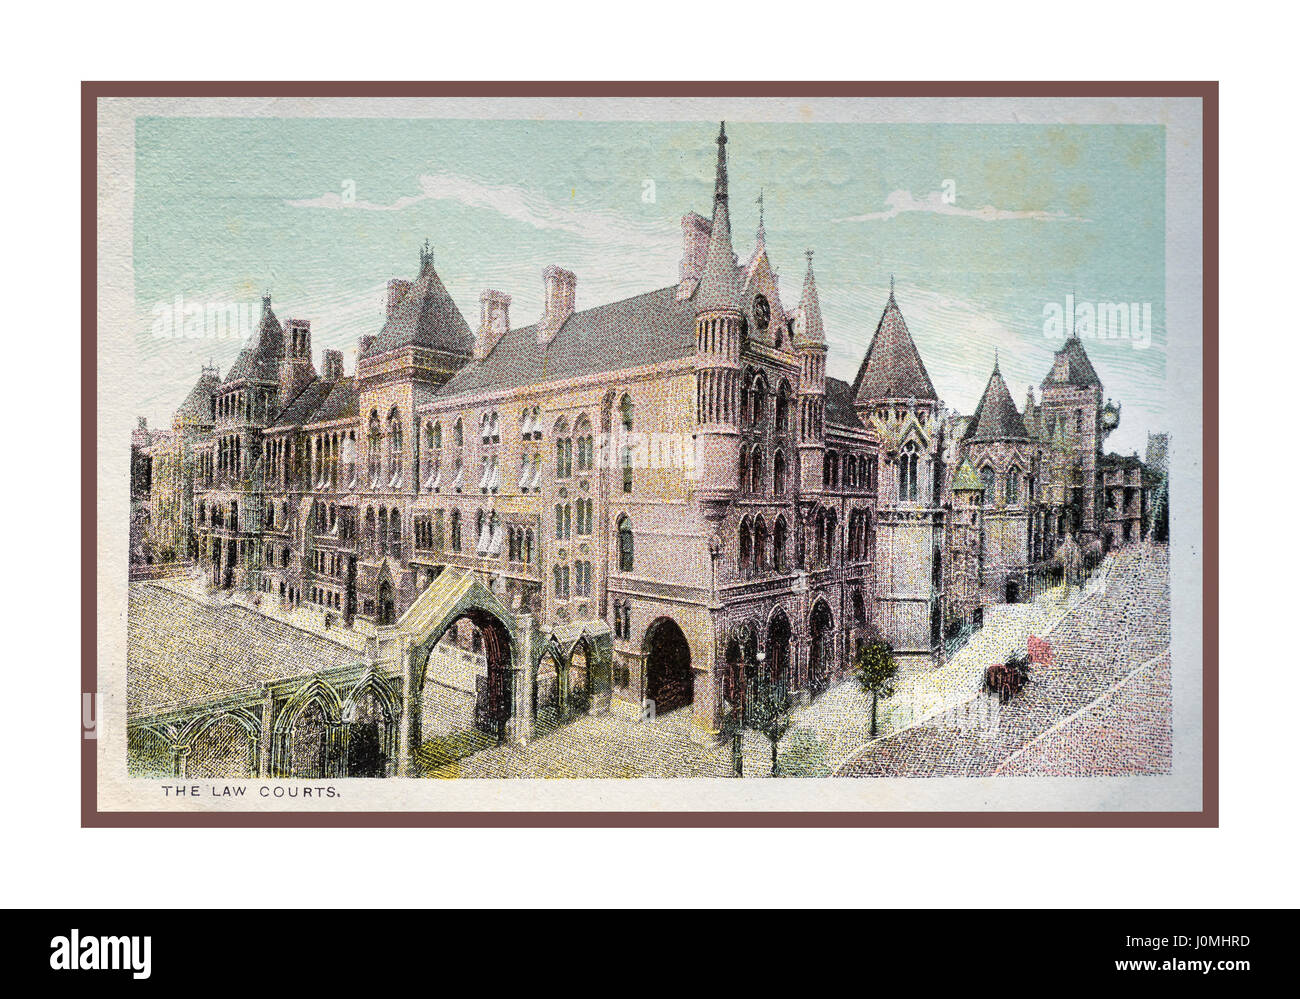 Vintage historic 1890's illustration of Royal Courts of Justice Holborn London - Stock Image